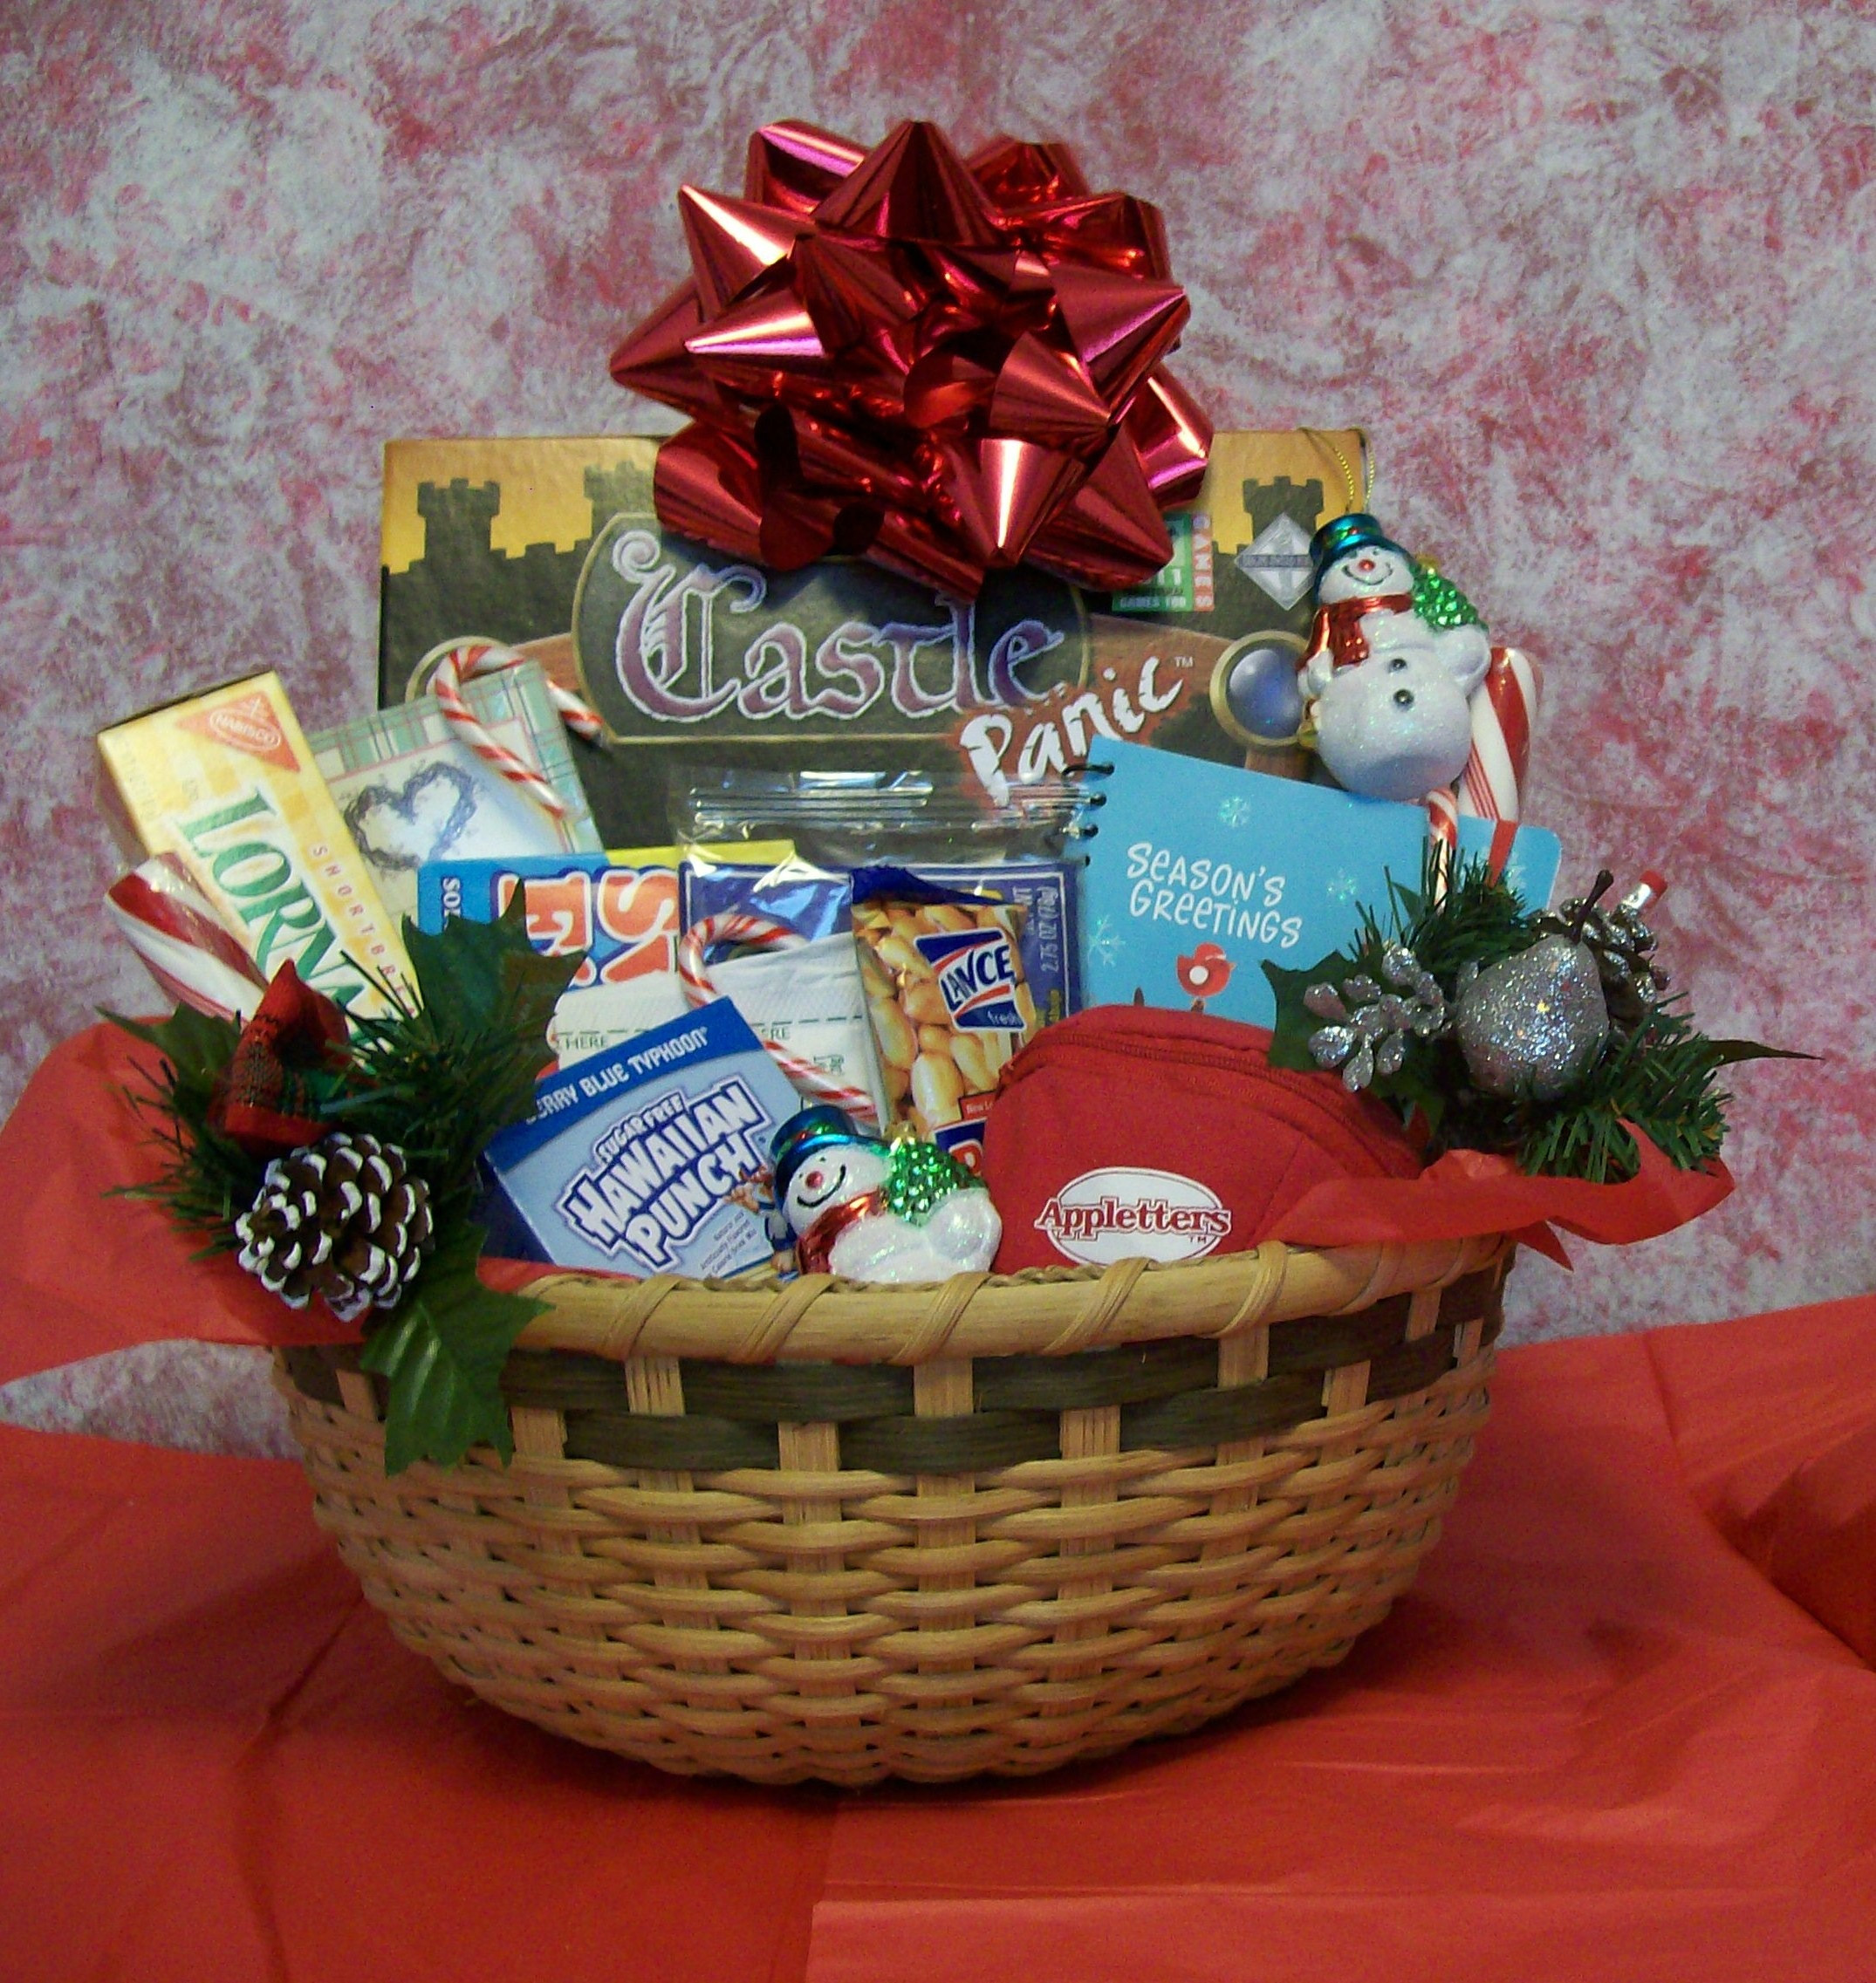 Best ideas about Holiday Gift Baskets Ideas . Save or Pin Family Gift Ideas For Christmas Now.